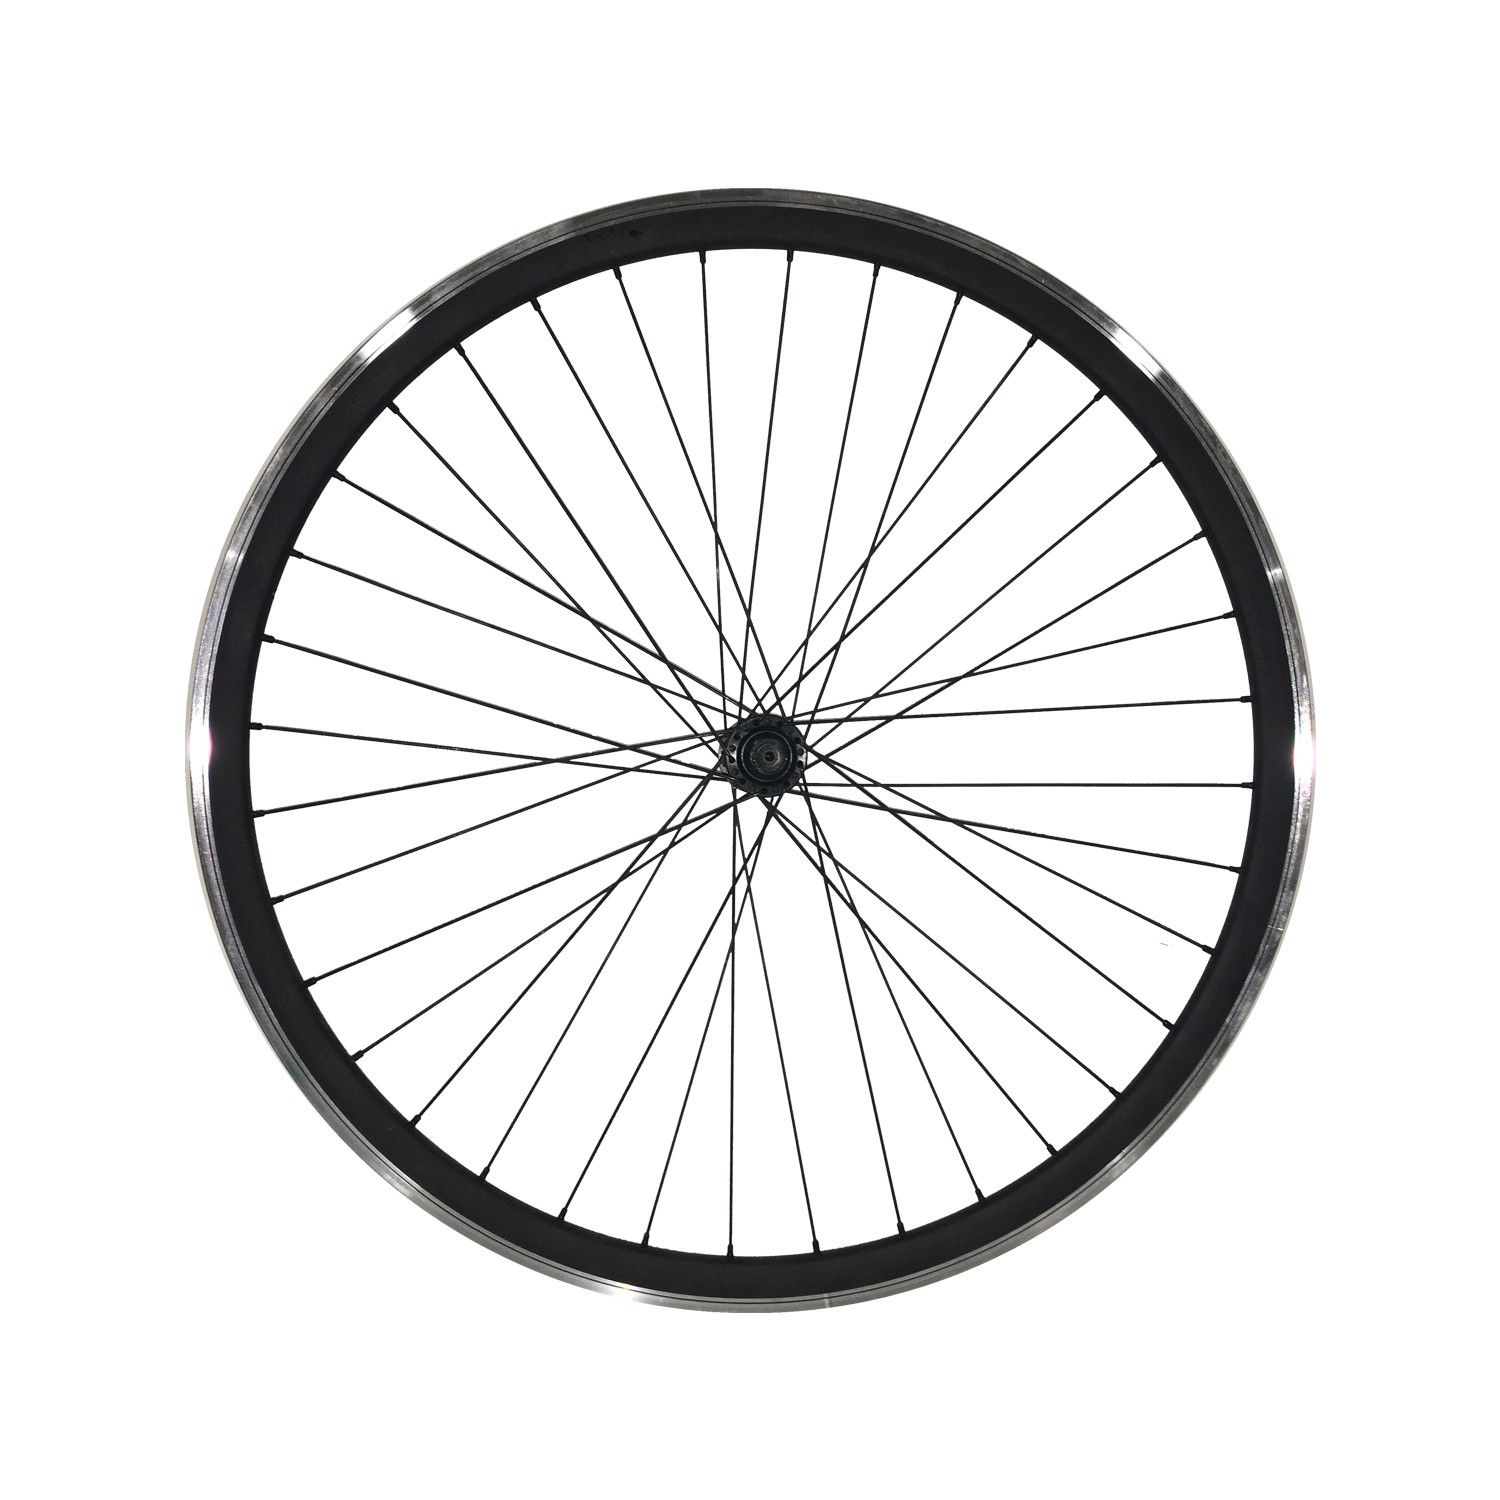 700c Clincher Road Bike Wheelset Health coach, Wellness